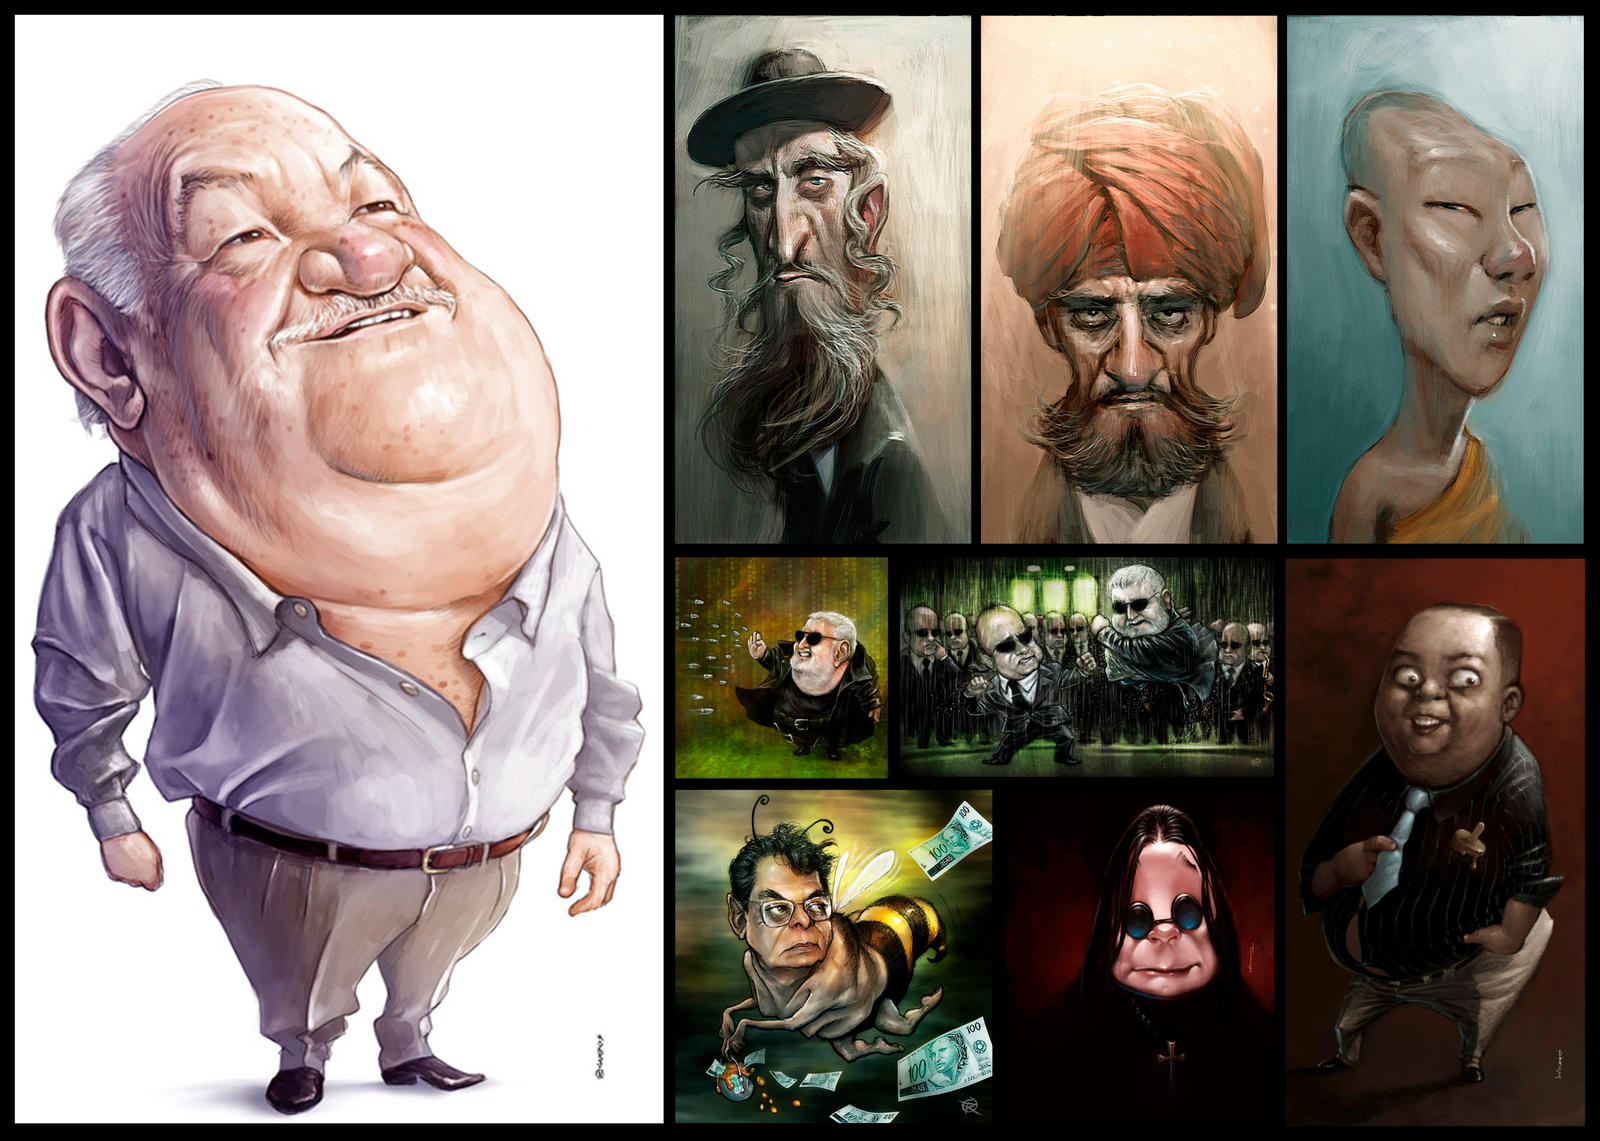 Caricatures by Bpacker